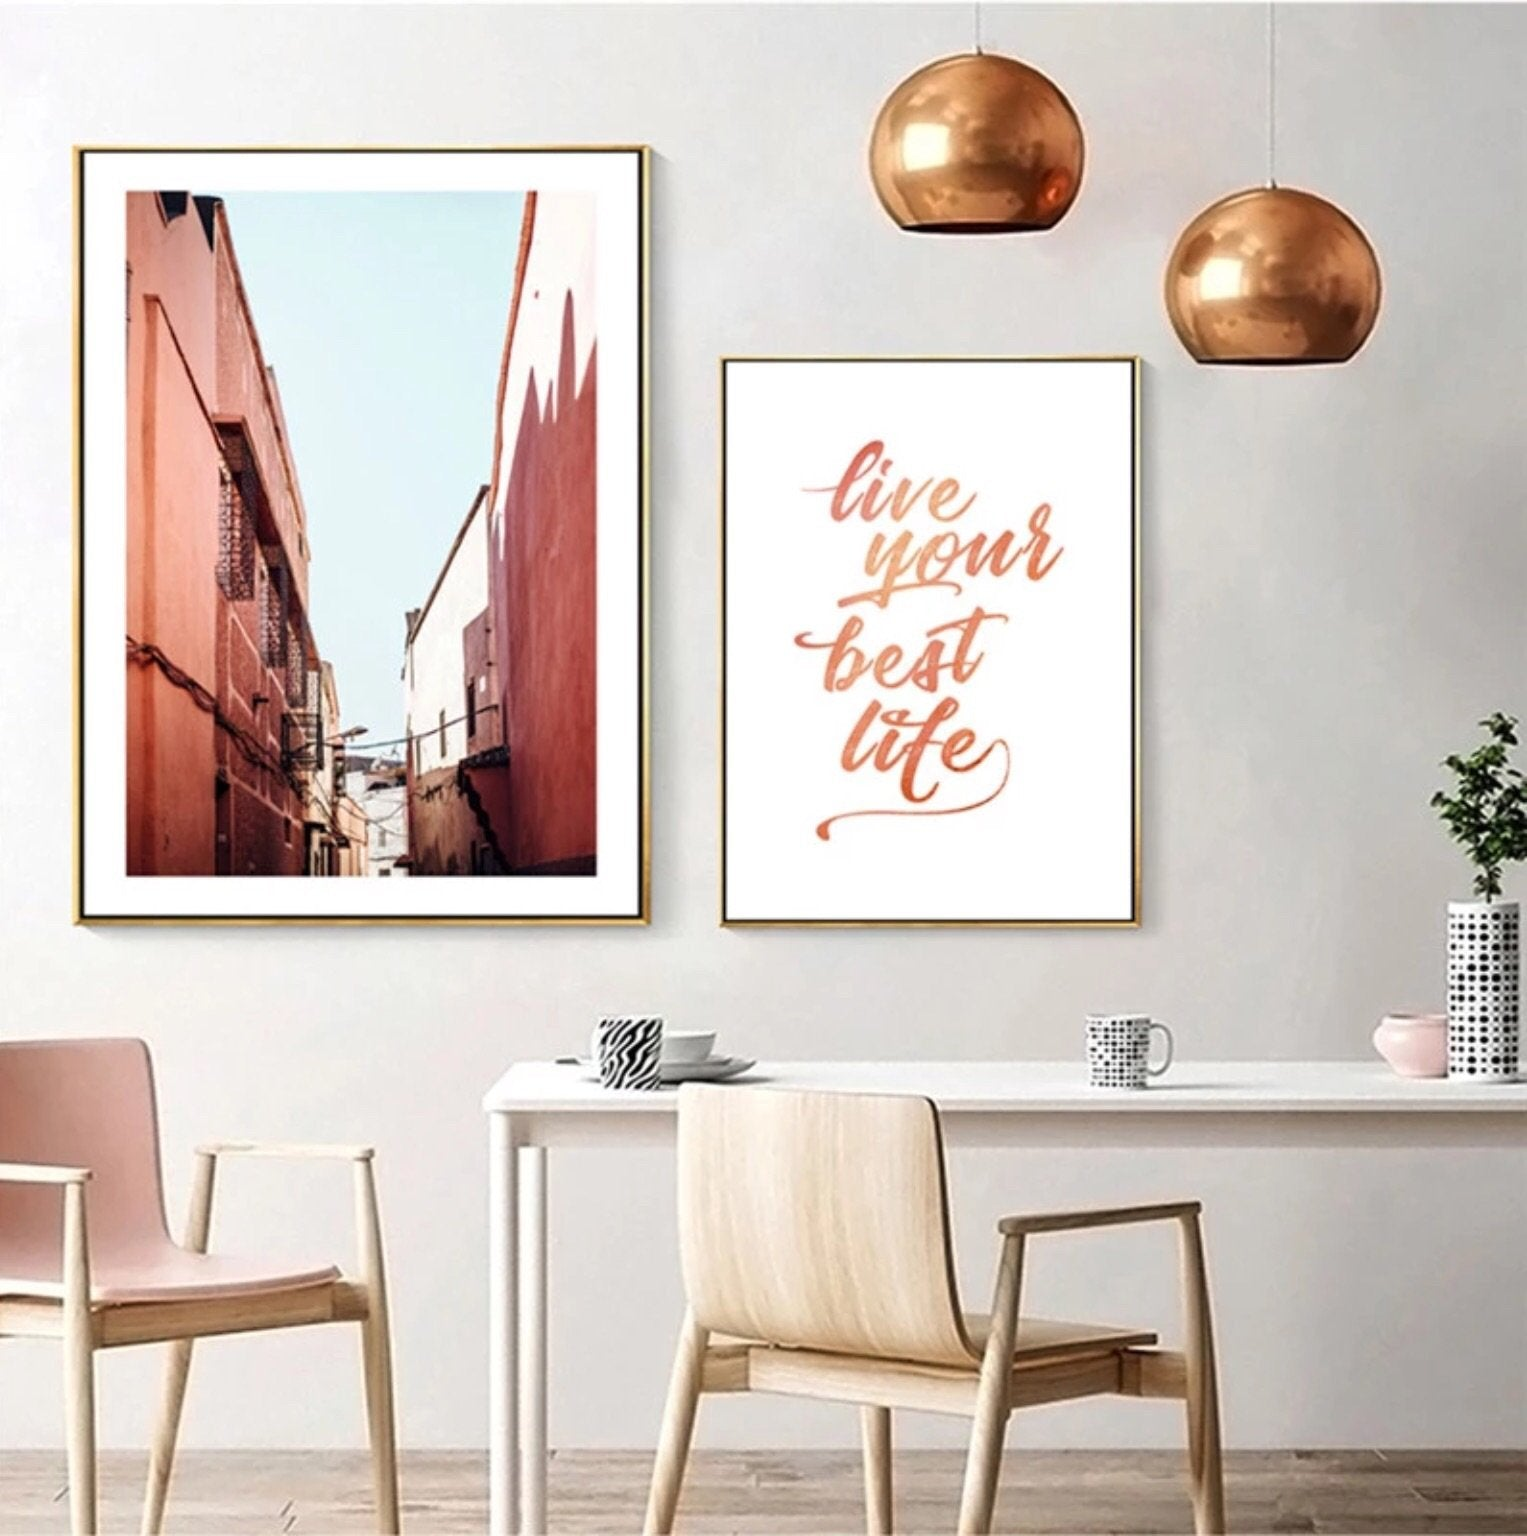 Living Coral Flamingo Beach Best Life Canvas Wall Art Collection - Pebble & Leaf HomeArt